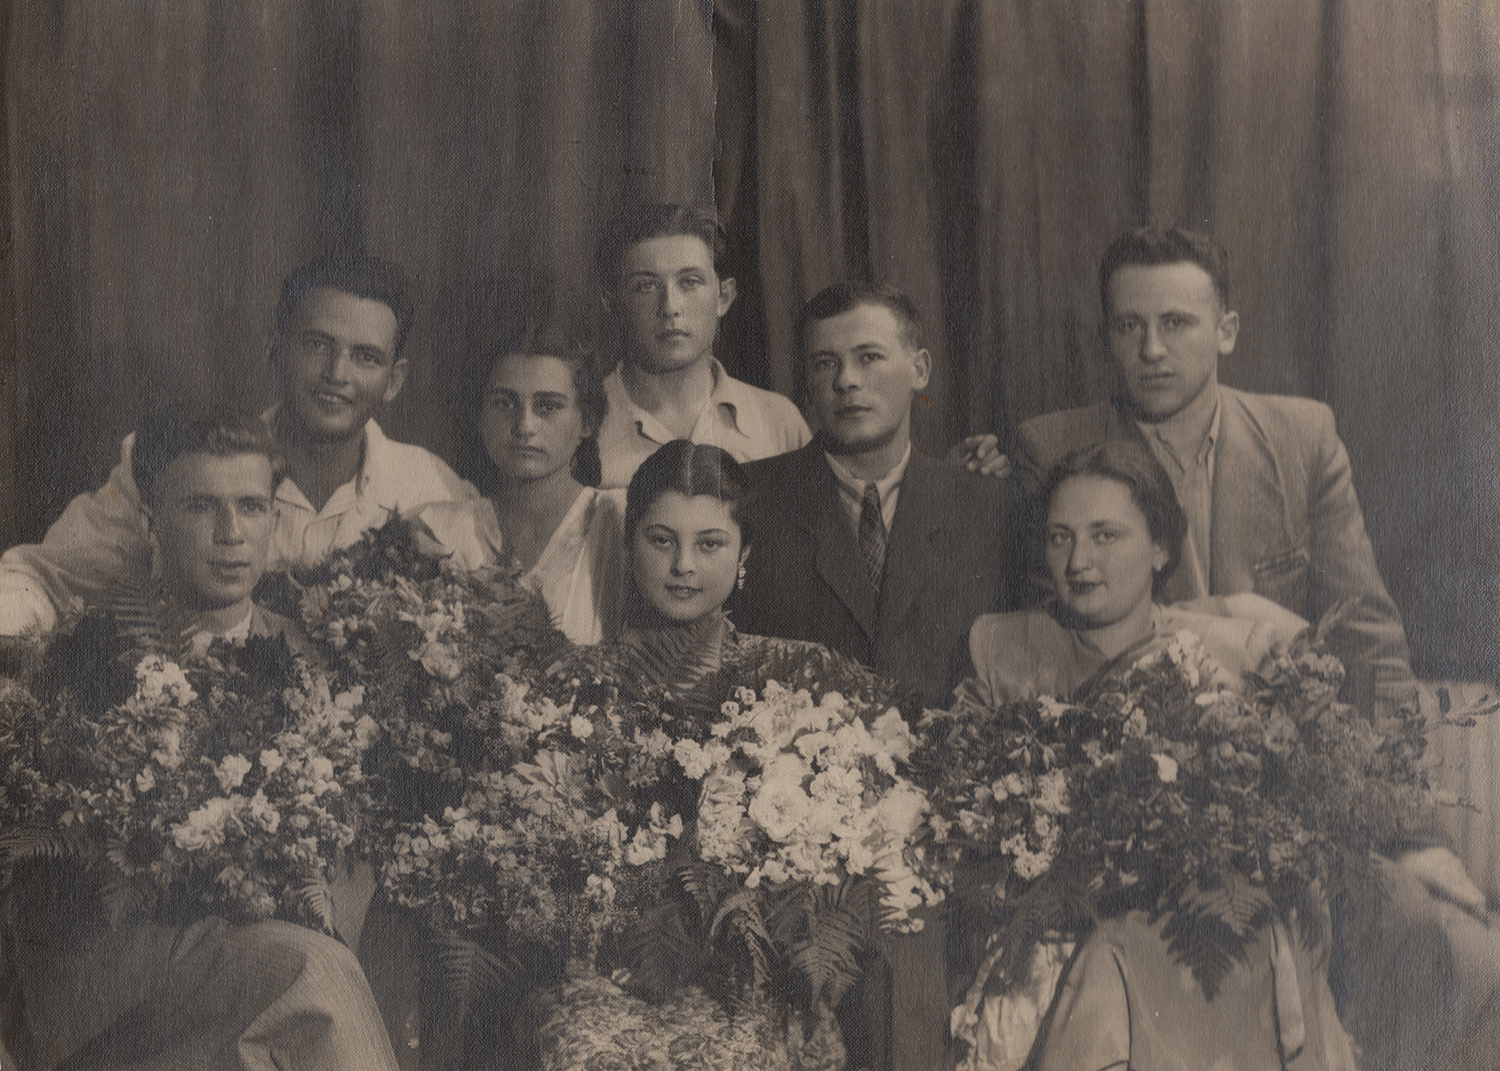 Yankelevich's wedding photograph. His bride, Larisa, is in 1st row, middle; Mark is standing behind her in a dark suit. Kyiv, 1950